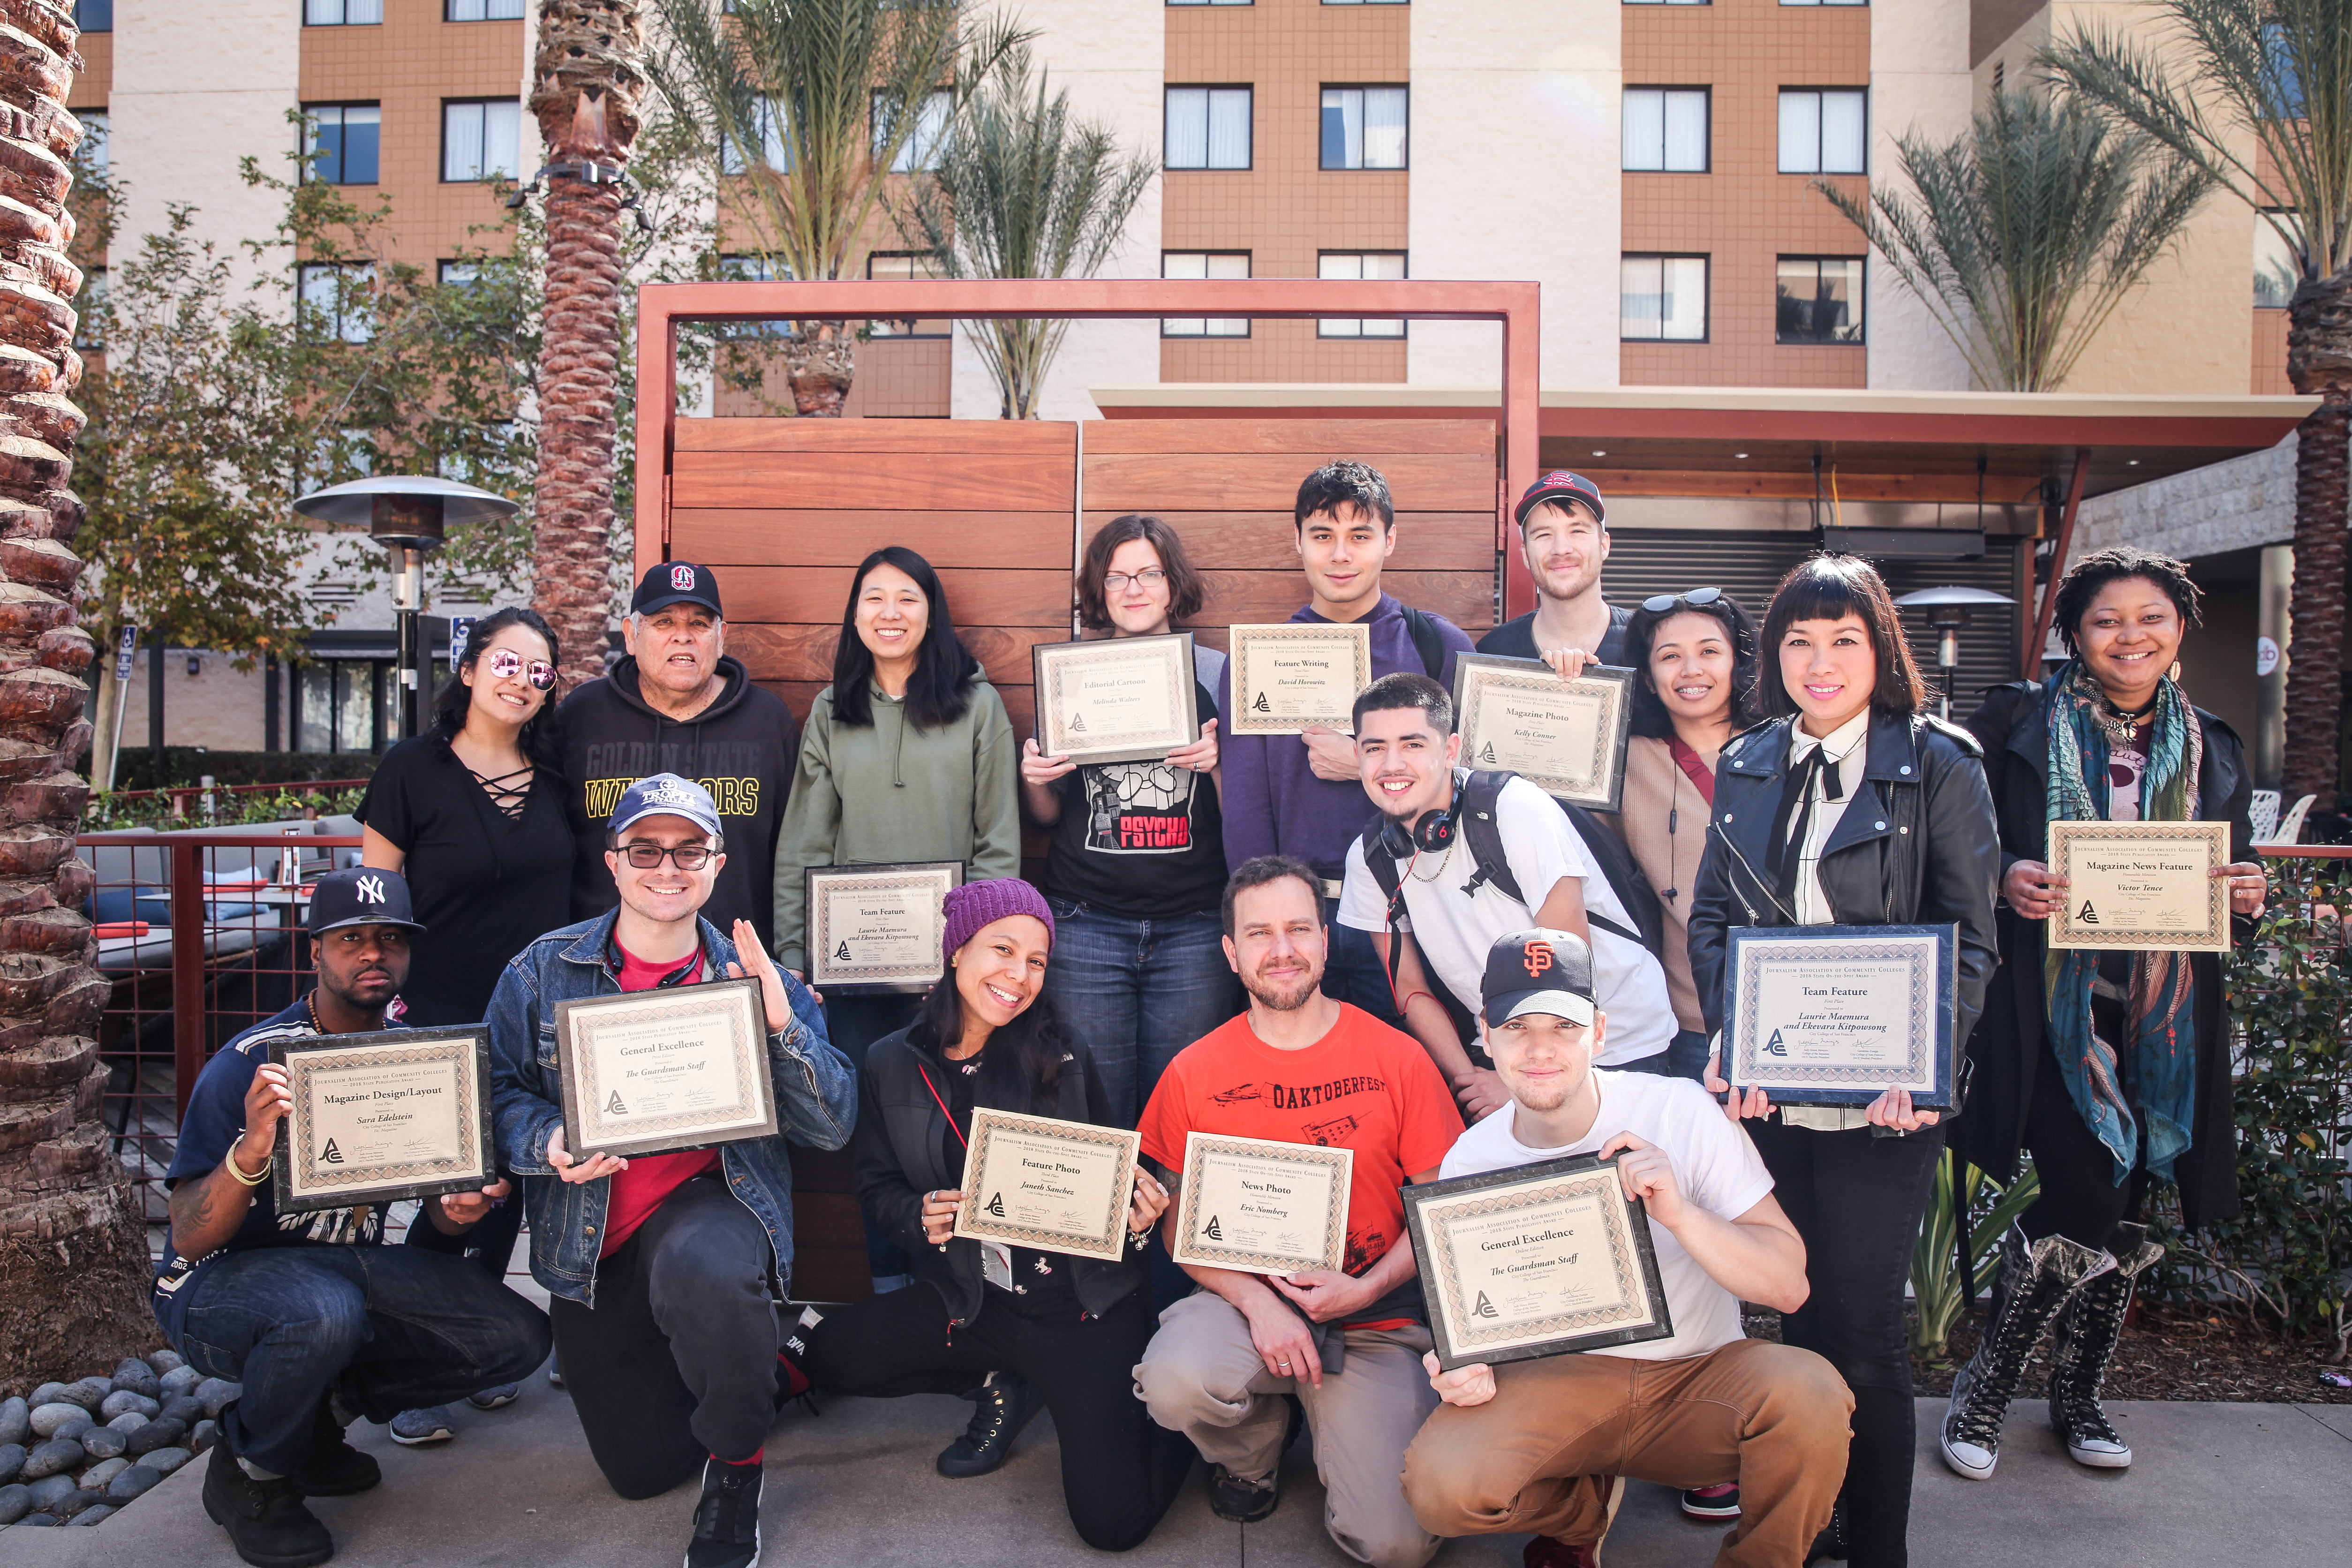 Journalism students from The Guardsman and Etc. Magazine pose for a group shot with awards they received from the JACC State Convention on Sunday, March 25, 2018 in front of Los Angeles Marriott Burbank Airport in Burbank, Calif.